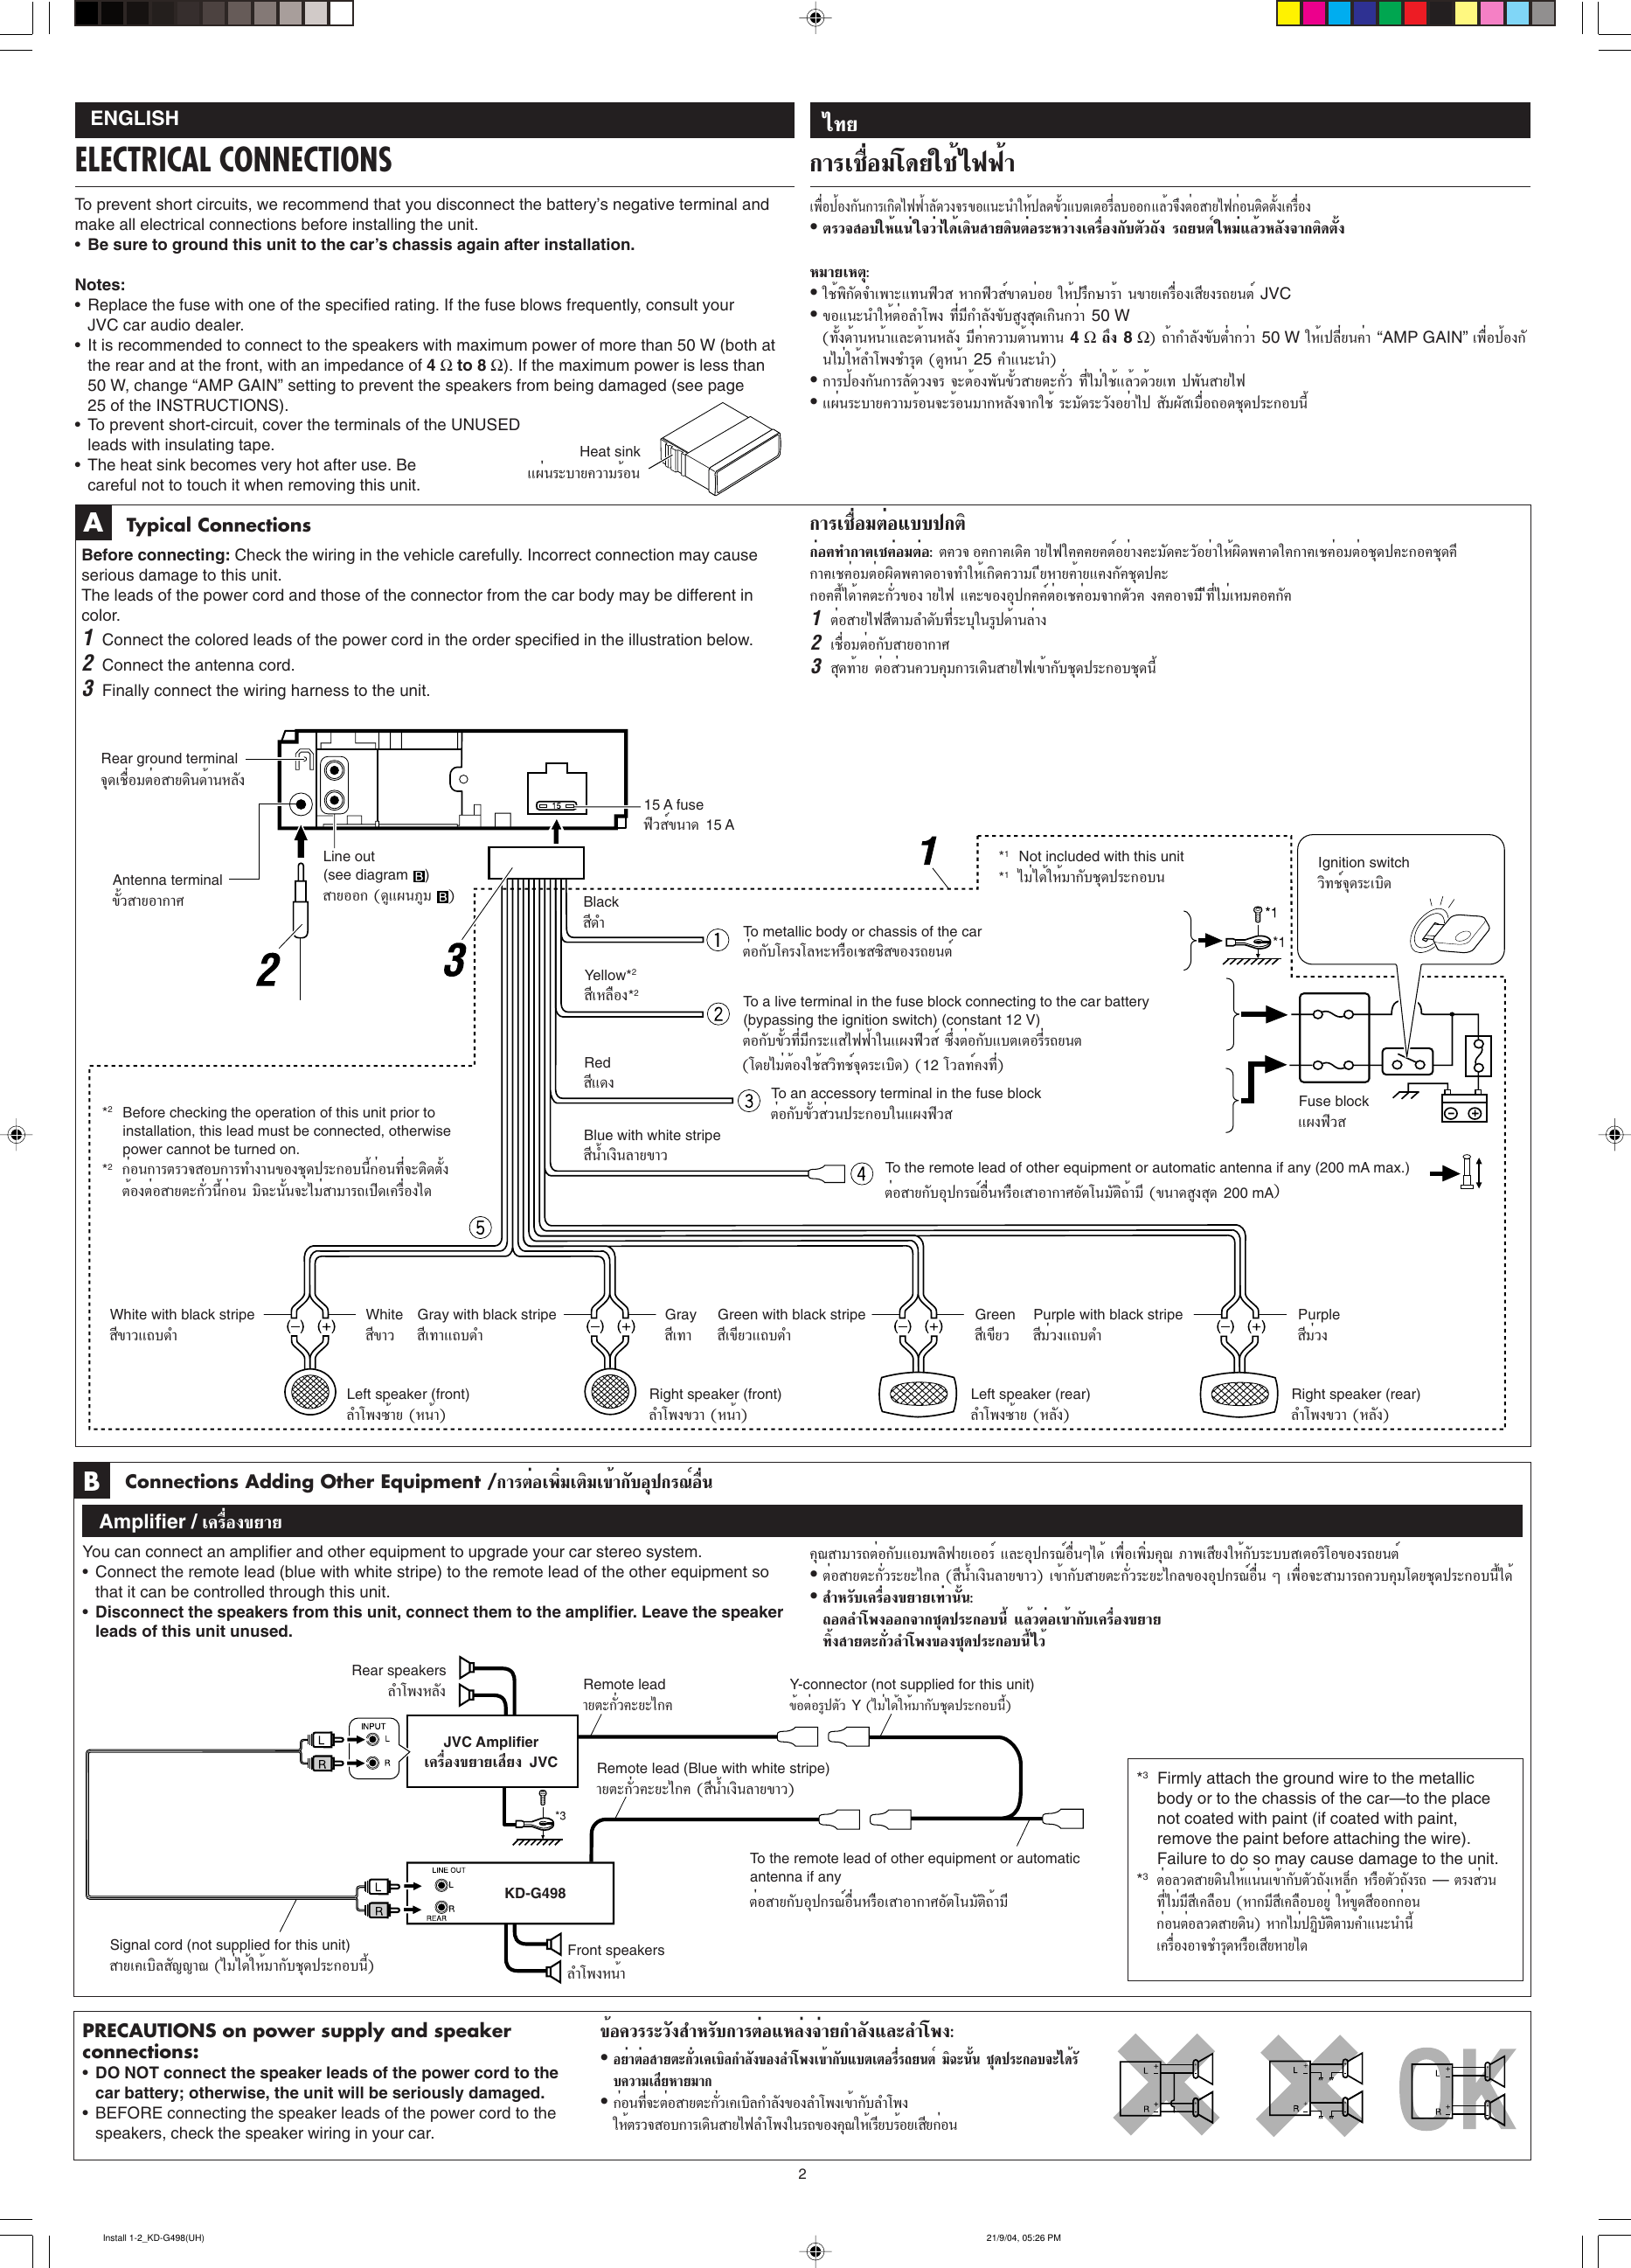 Jvc Kd G498uh User Manual Get0292 002a Automotive Wiring Harness Design Guide Page 2 Of